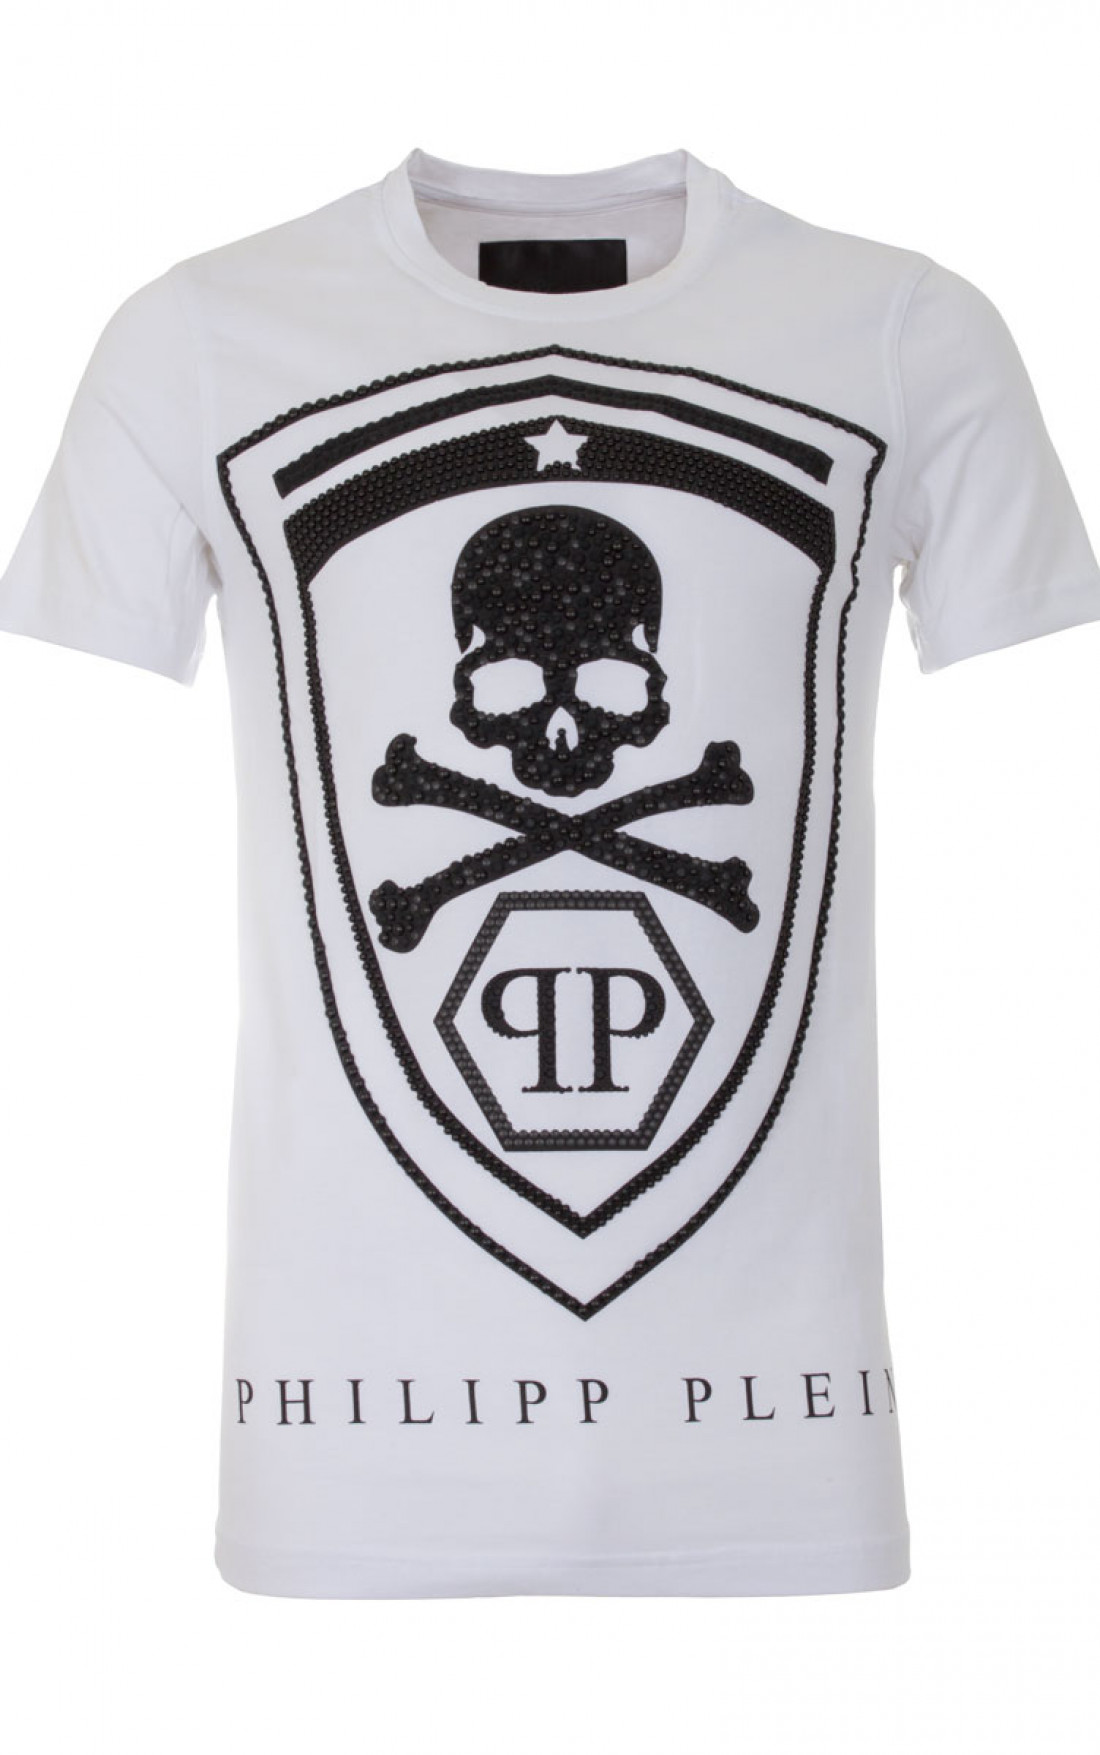 philipp plein 39 honour 39 t shirt white mens t shirt. Black Bedroom Furniture Sets. Home Design Ideas